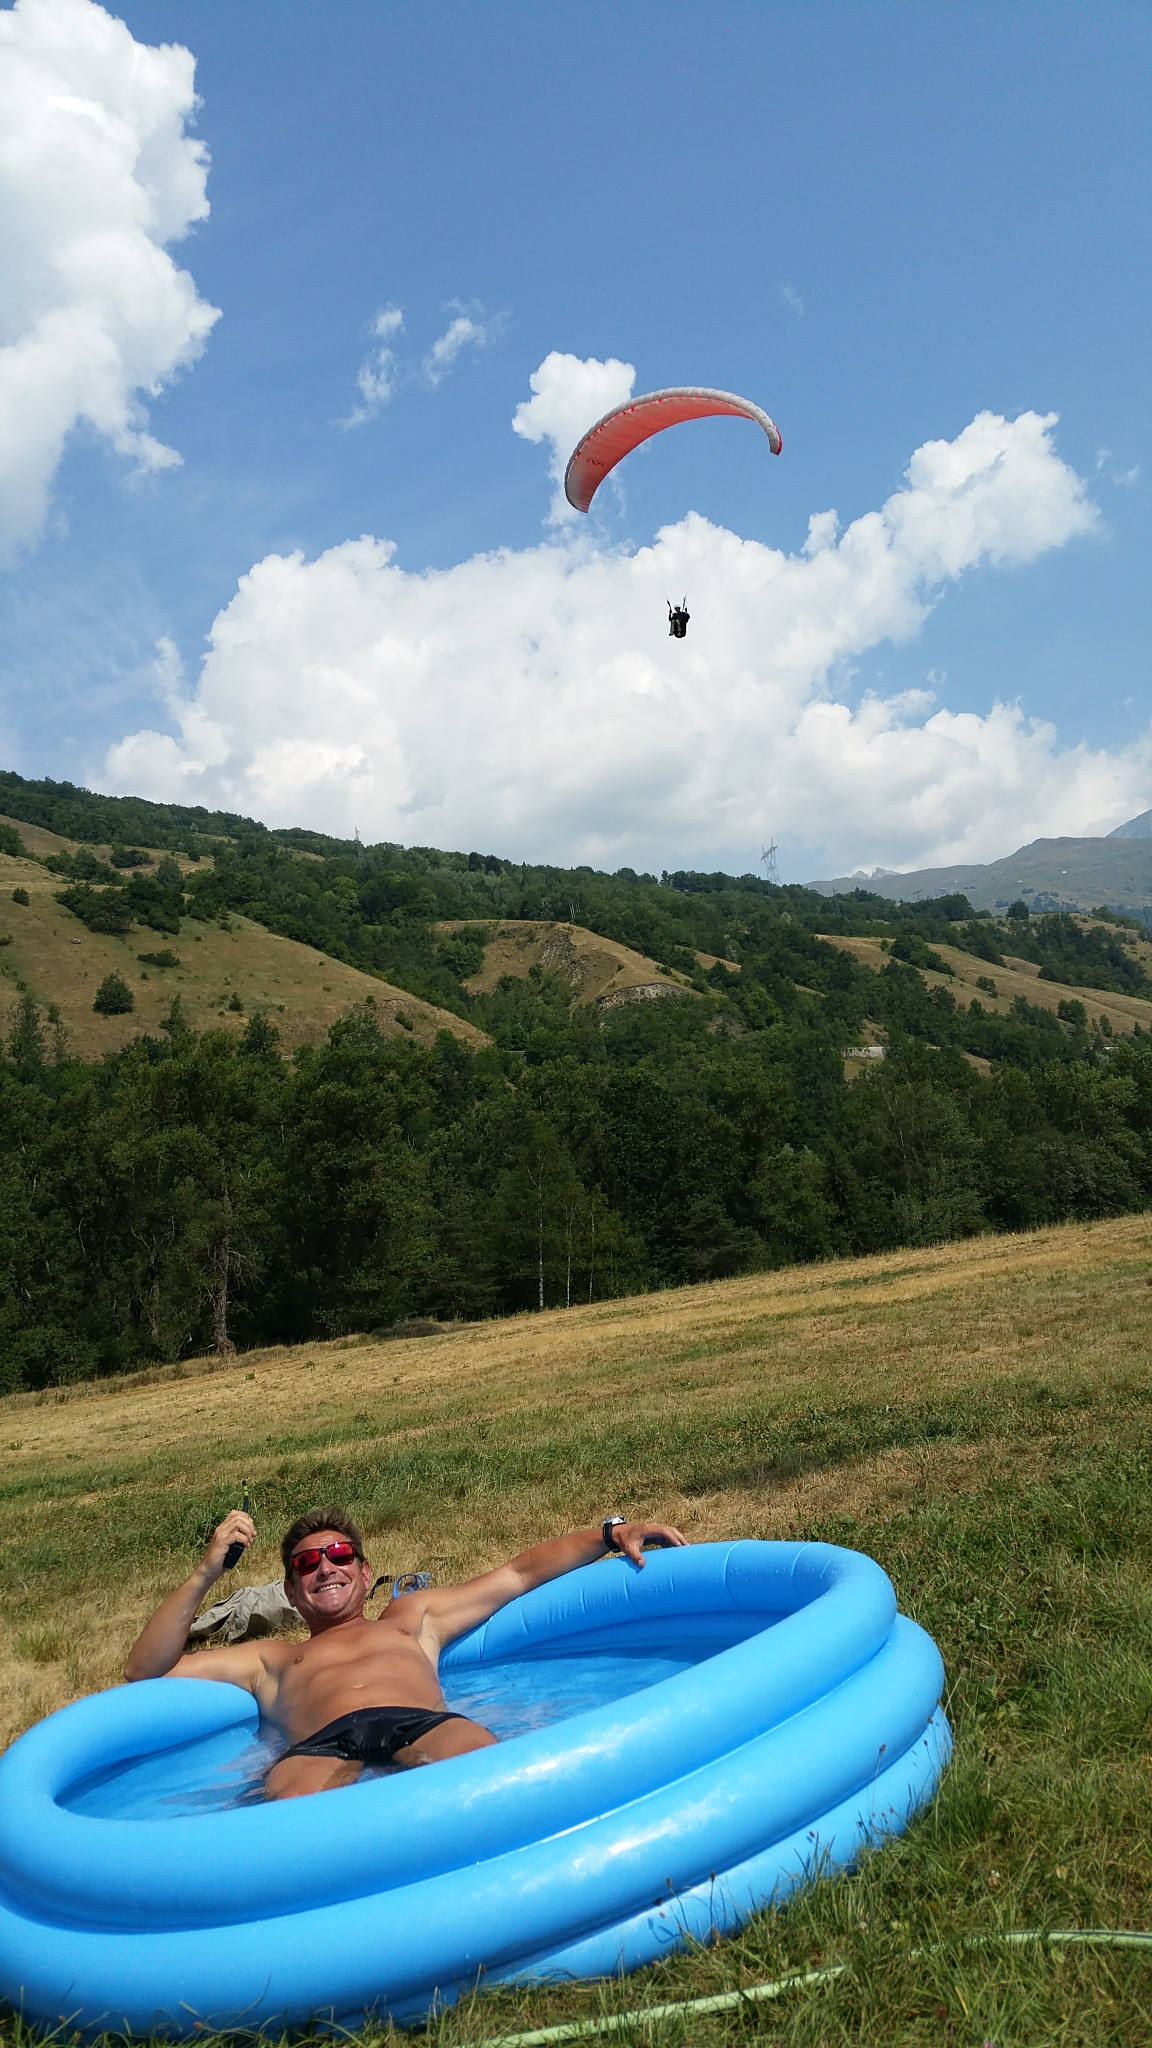 Unbelievable July month for paragliding. 5